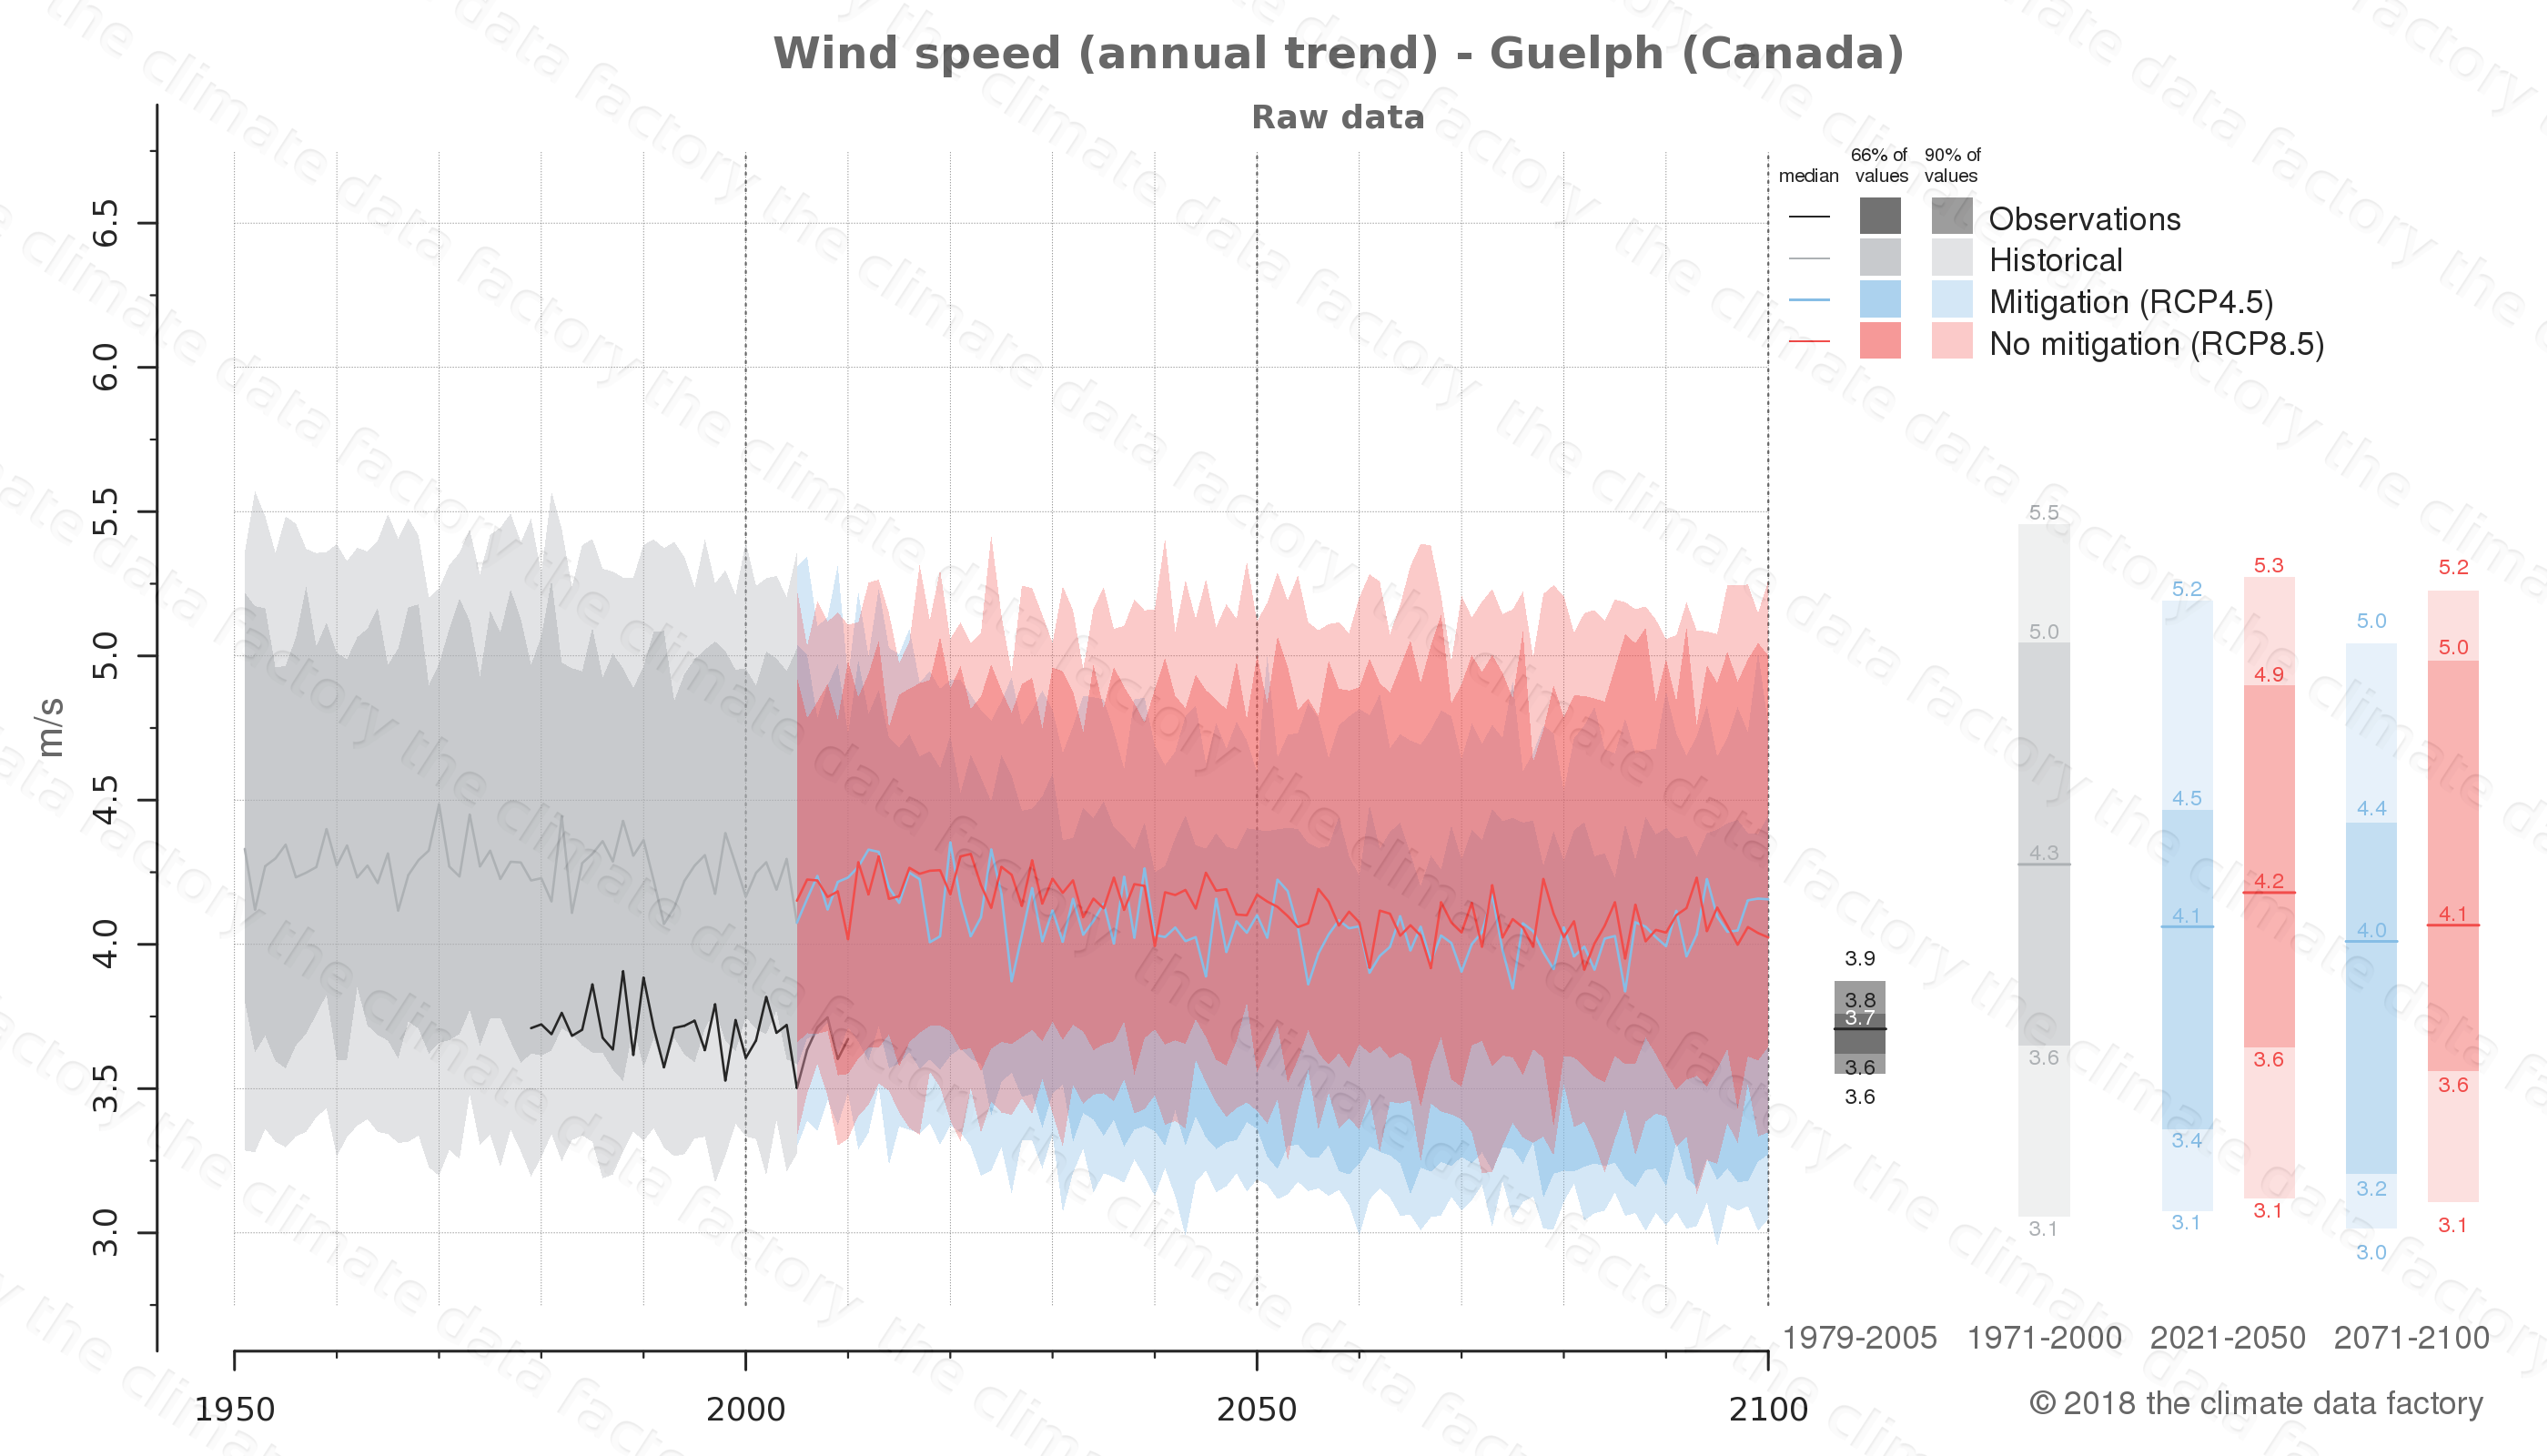 climate change data policy adaptation climate graph city data wind-speed guelph canada